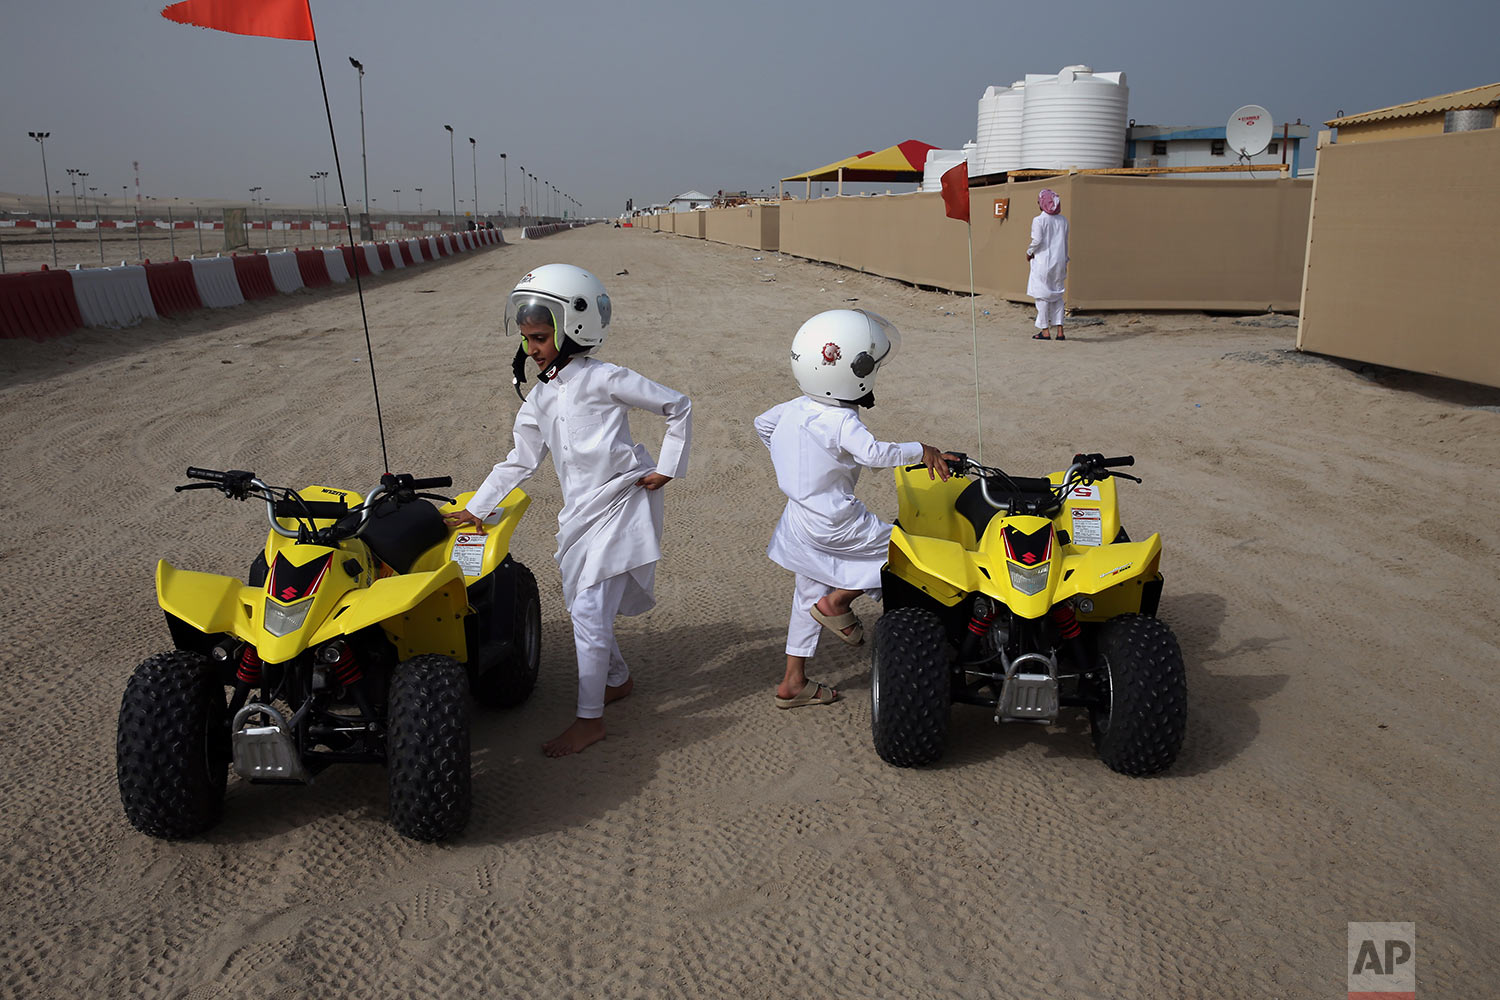 In this Friday, April 19, 2019 photo, two brothers get on their rental dune buggies at a camp by the sealine road, about 40 kms, 25 miles, south of Doha, Qatar. (AP Photo/Kamran Jebreili)